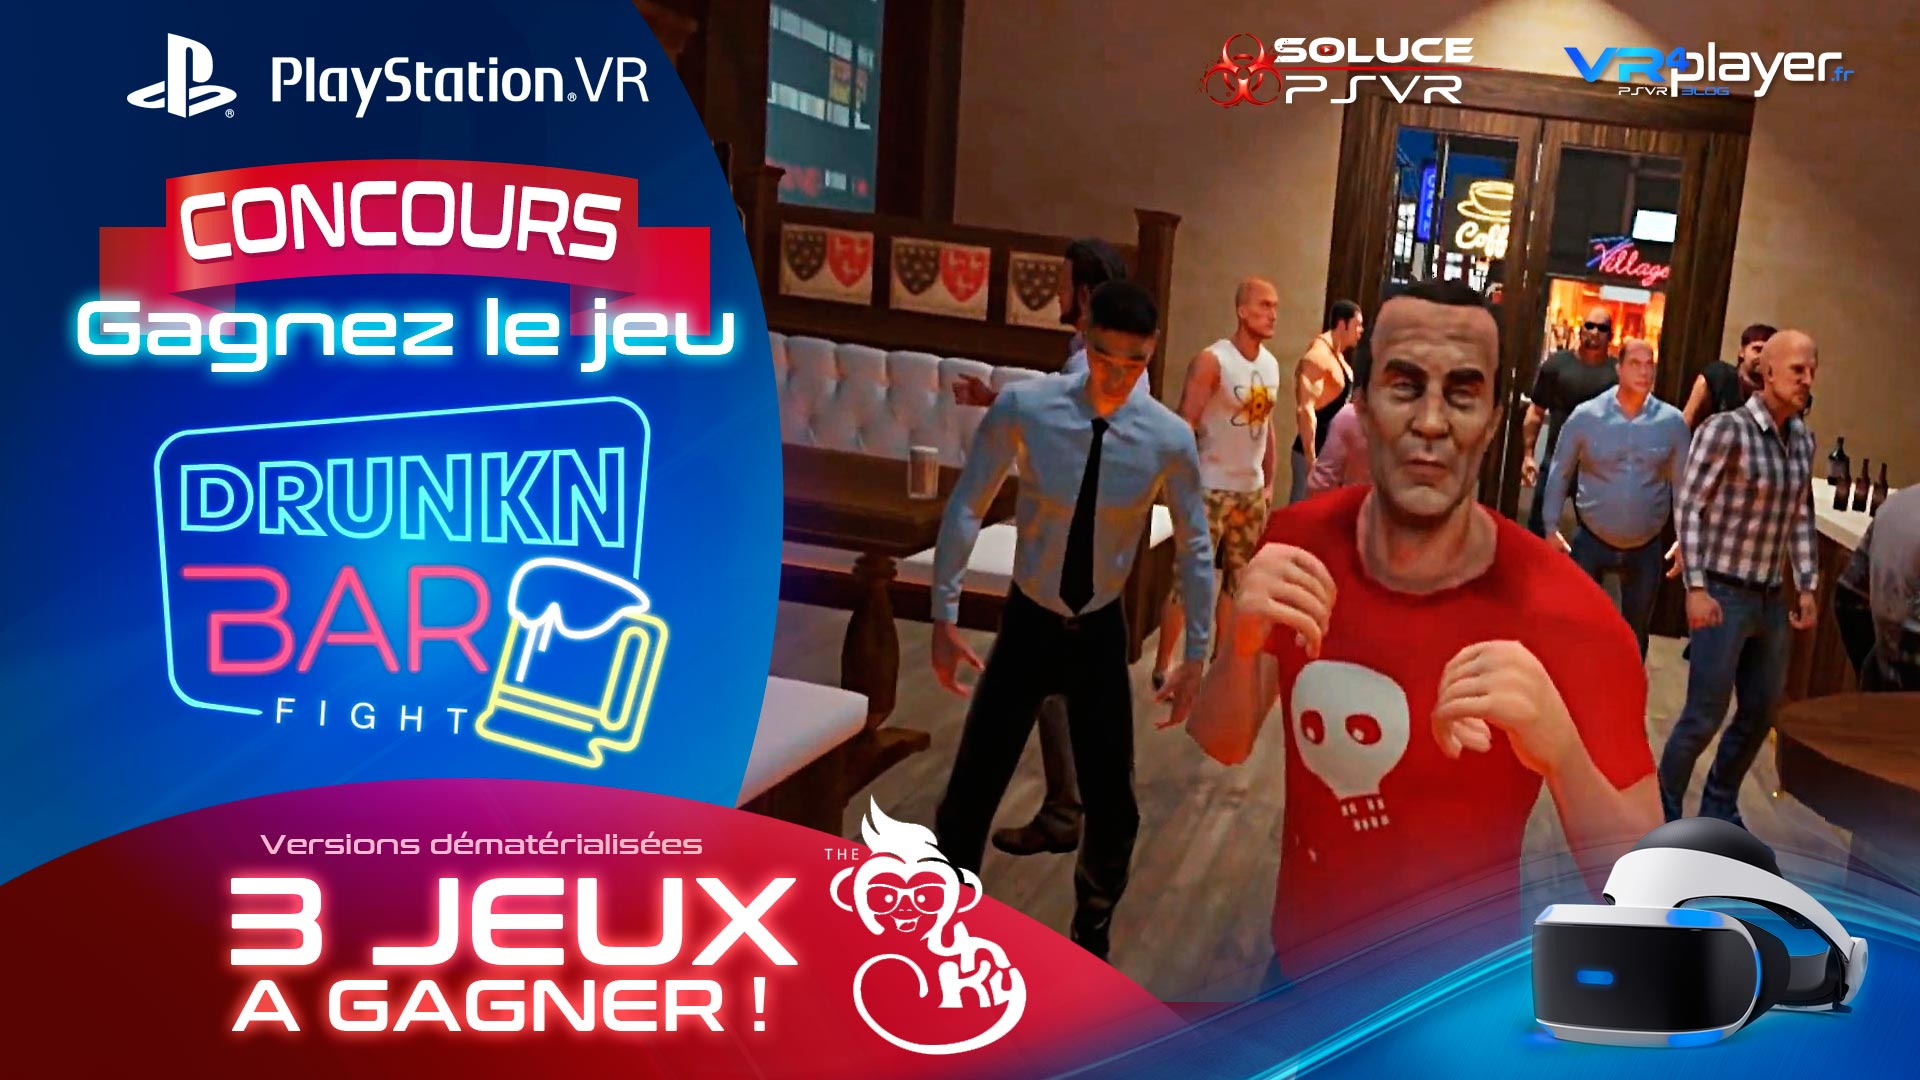 Drunkn Bar Fight Concours VR4player